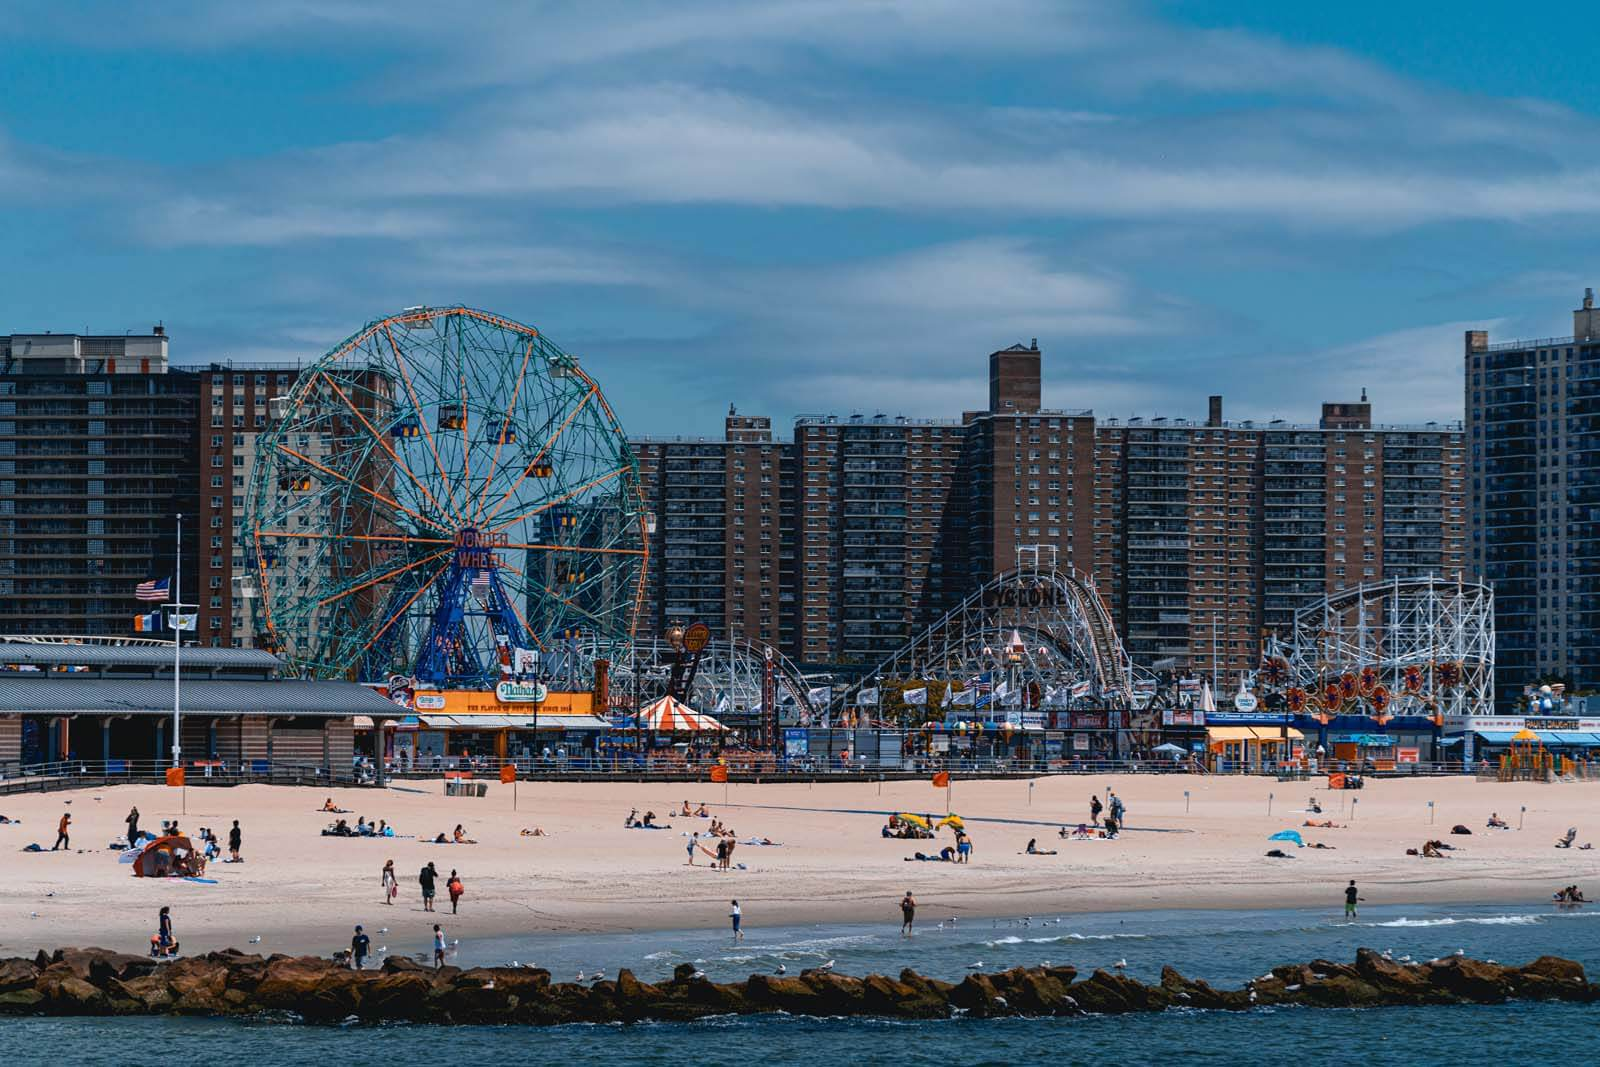 View of Coney Island from Steeplechase Pier in Brooklyn